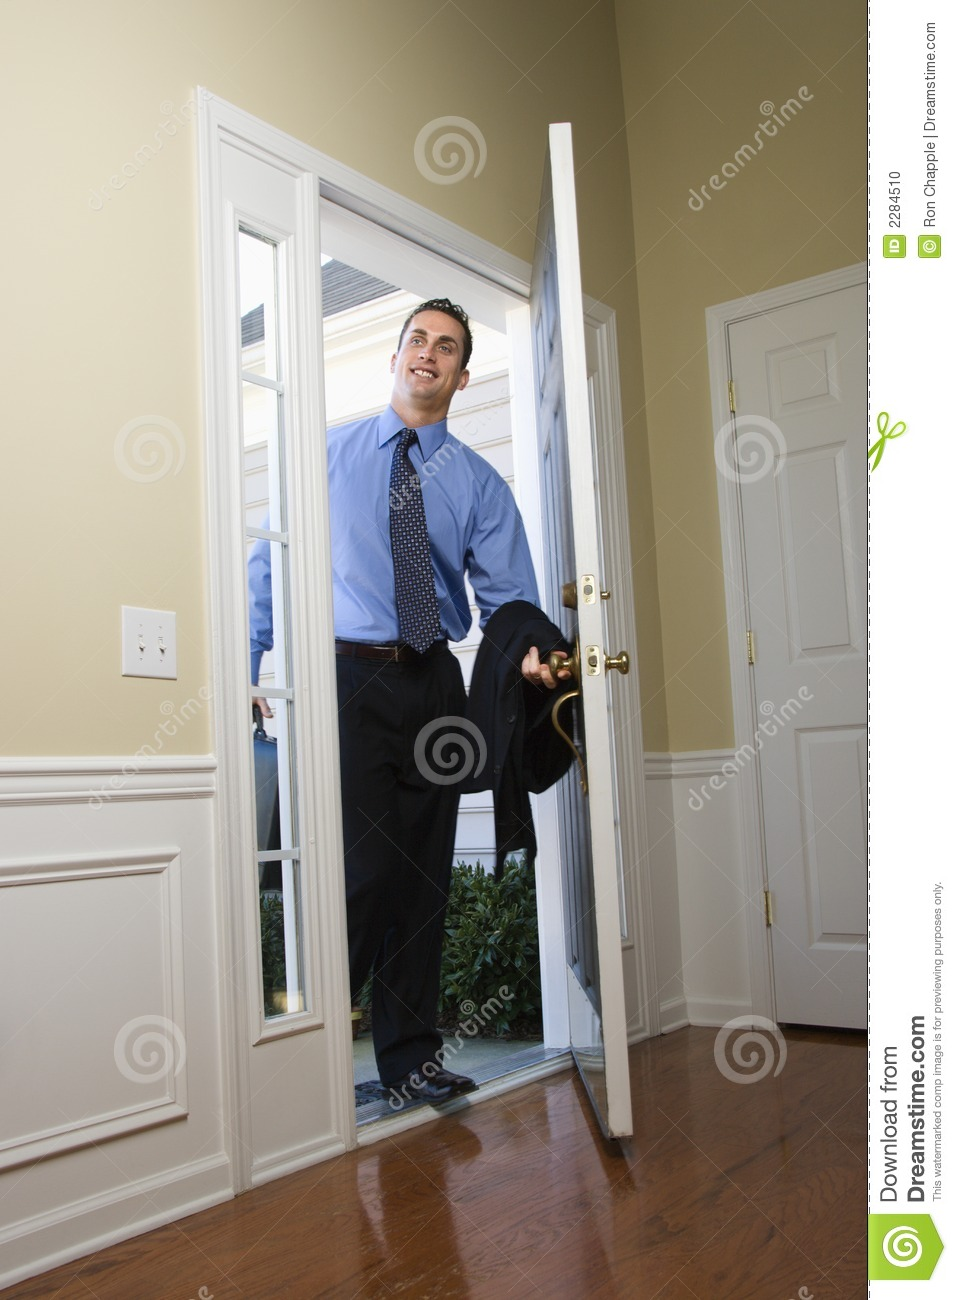 Businessman coming home